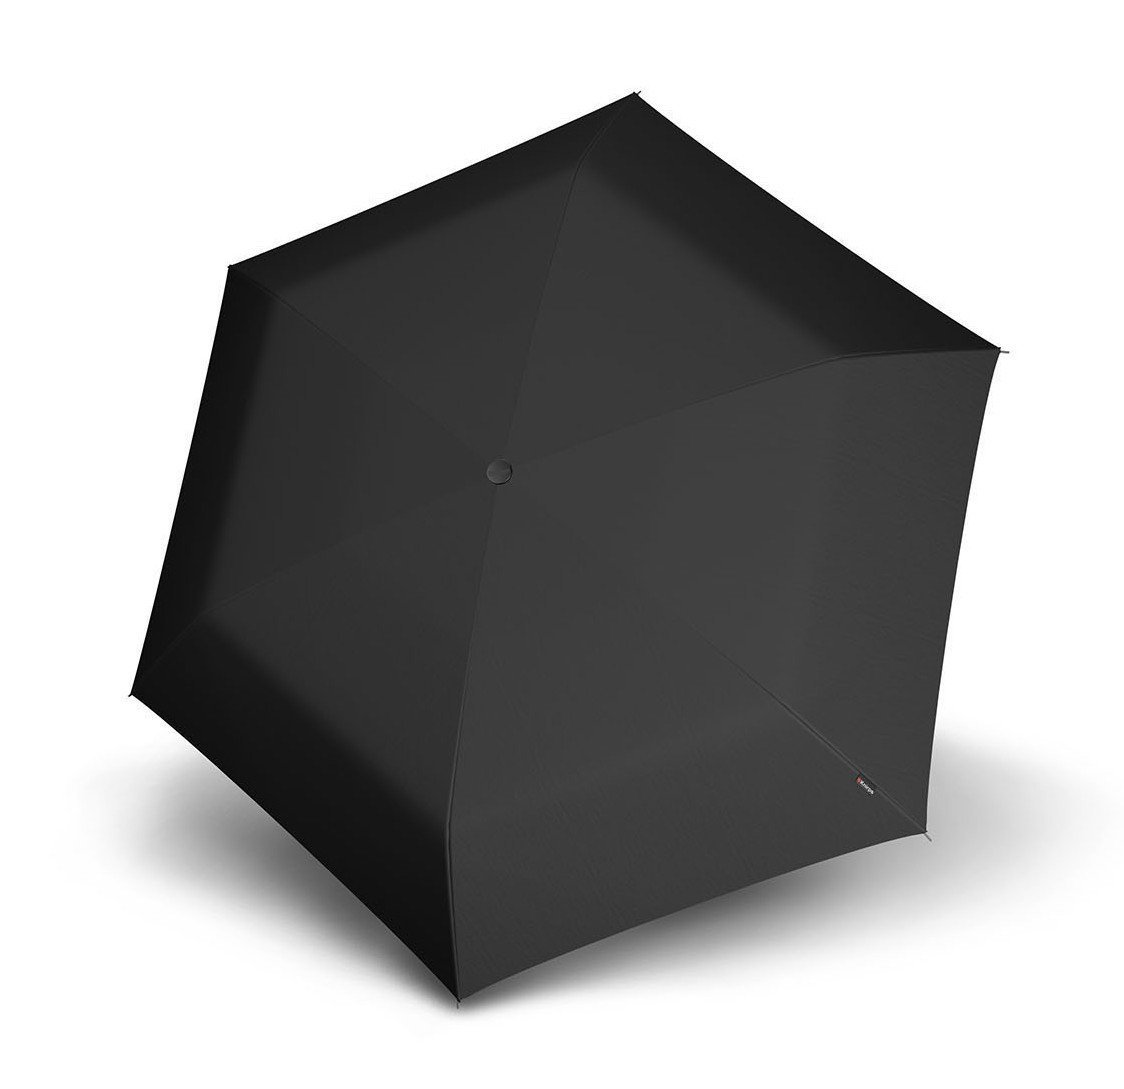 Knirps 815-100 Compact Manual Open/Close Travel Umbrella, One Size (Black) by Knirps